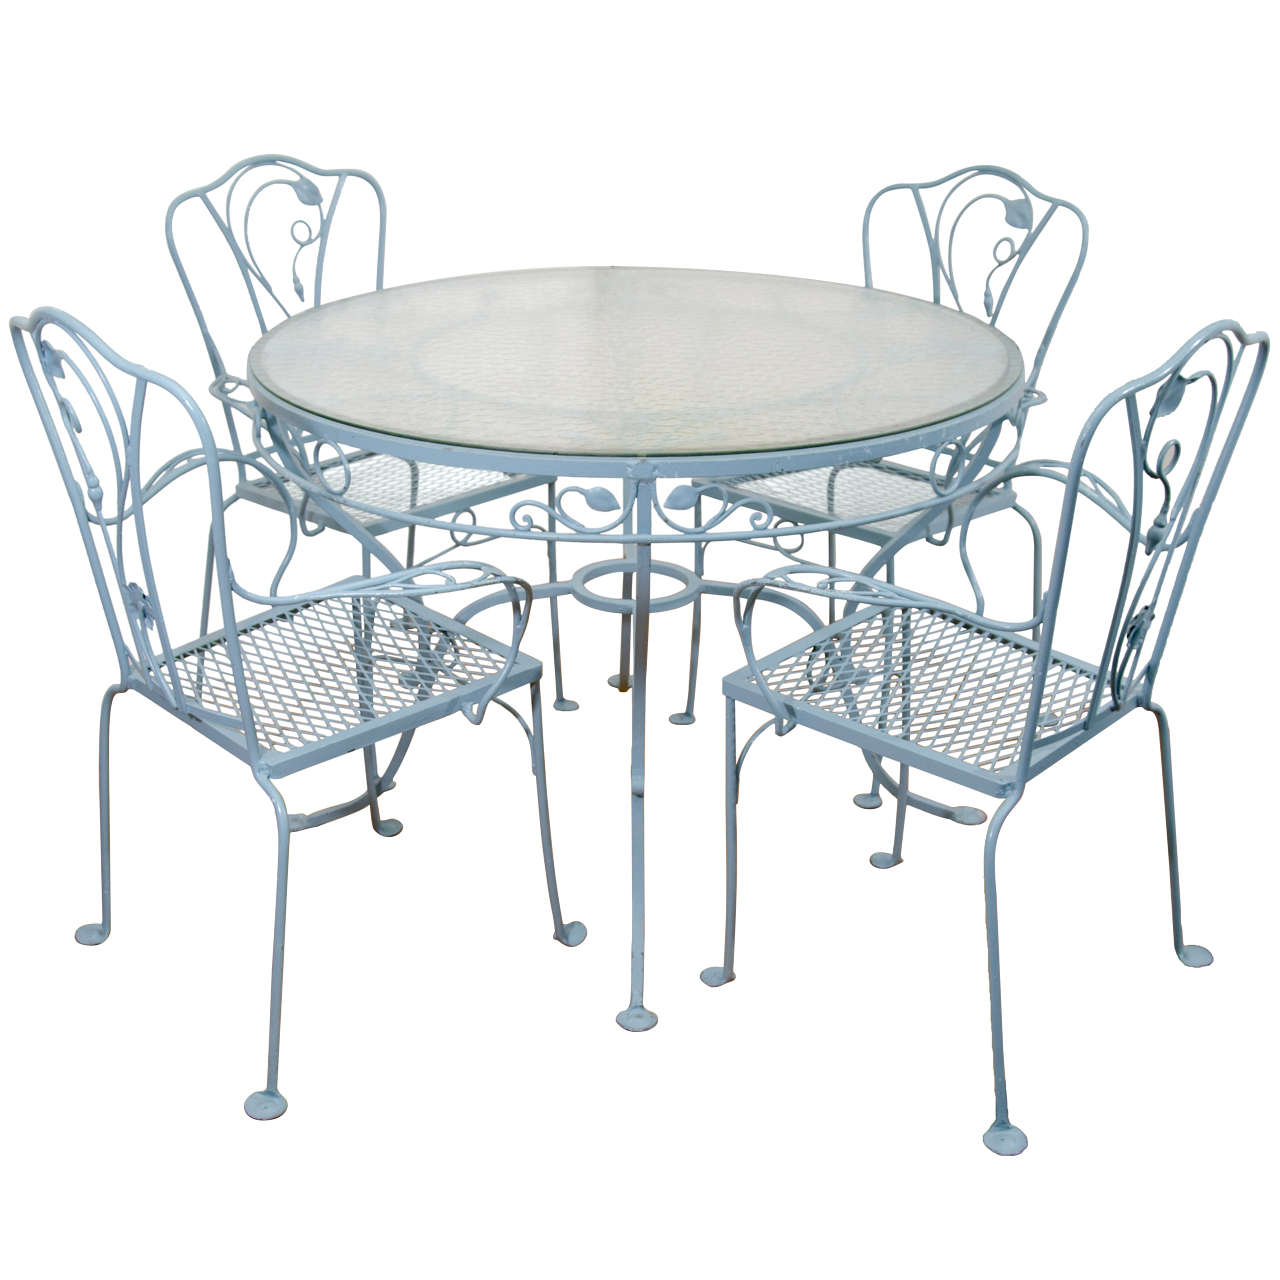 vintage table and chairs white ghost chair salterini wrought iron in powder